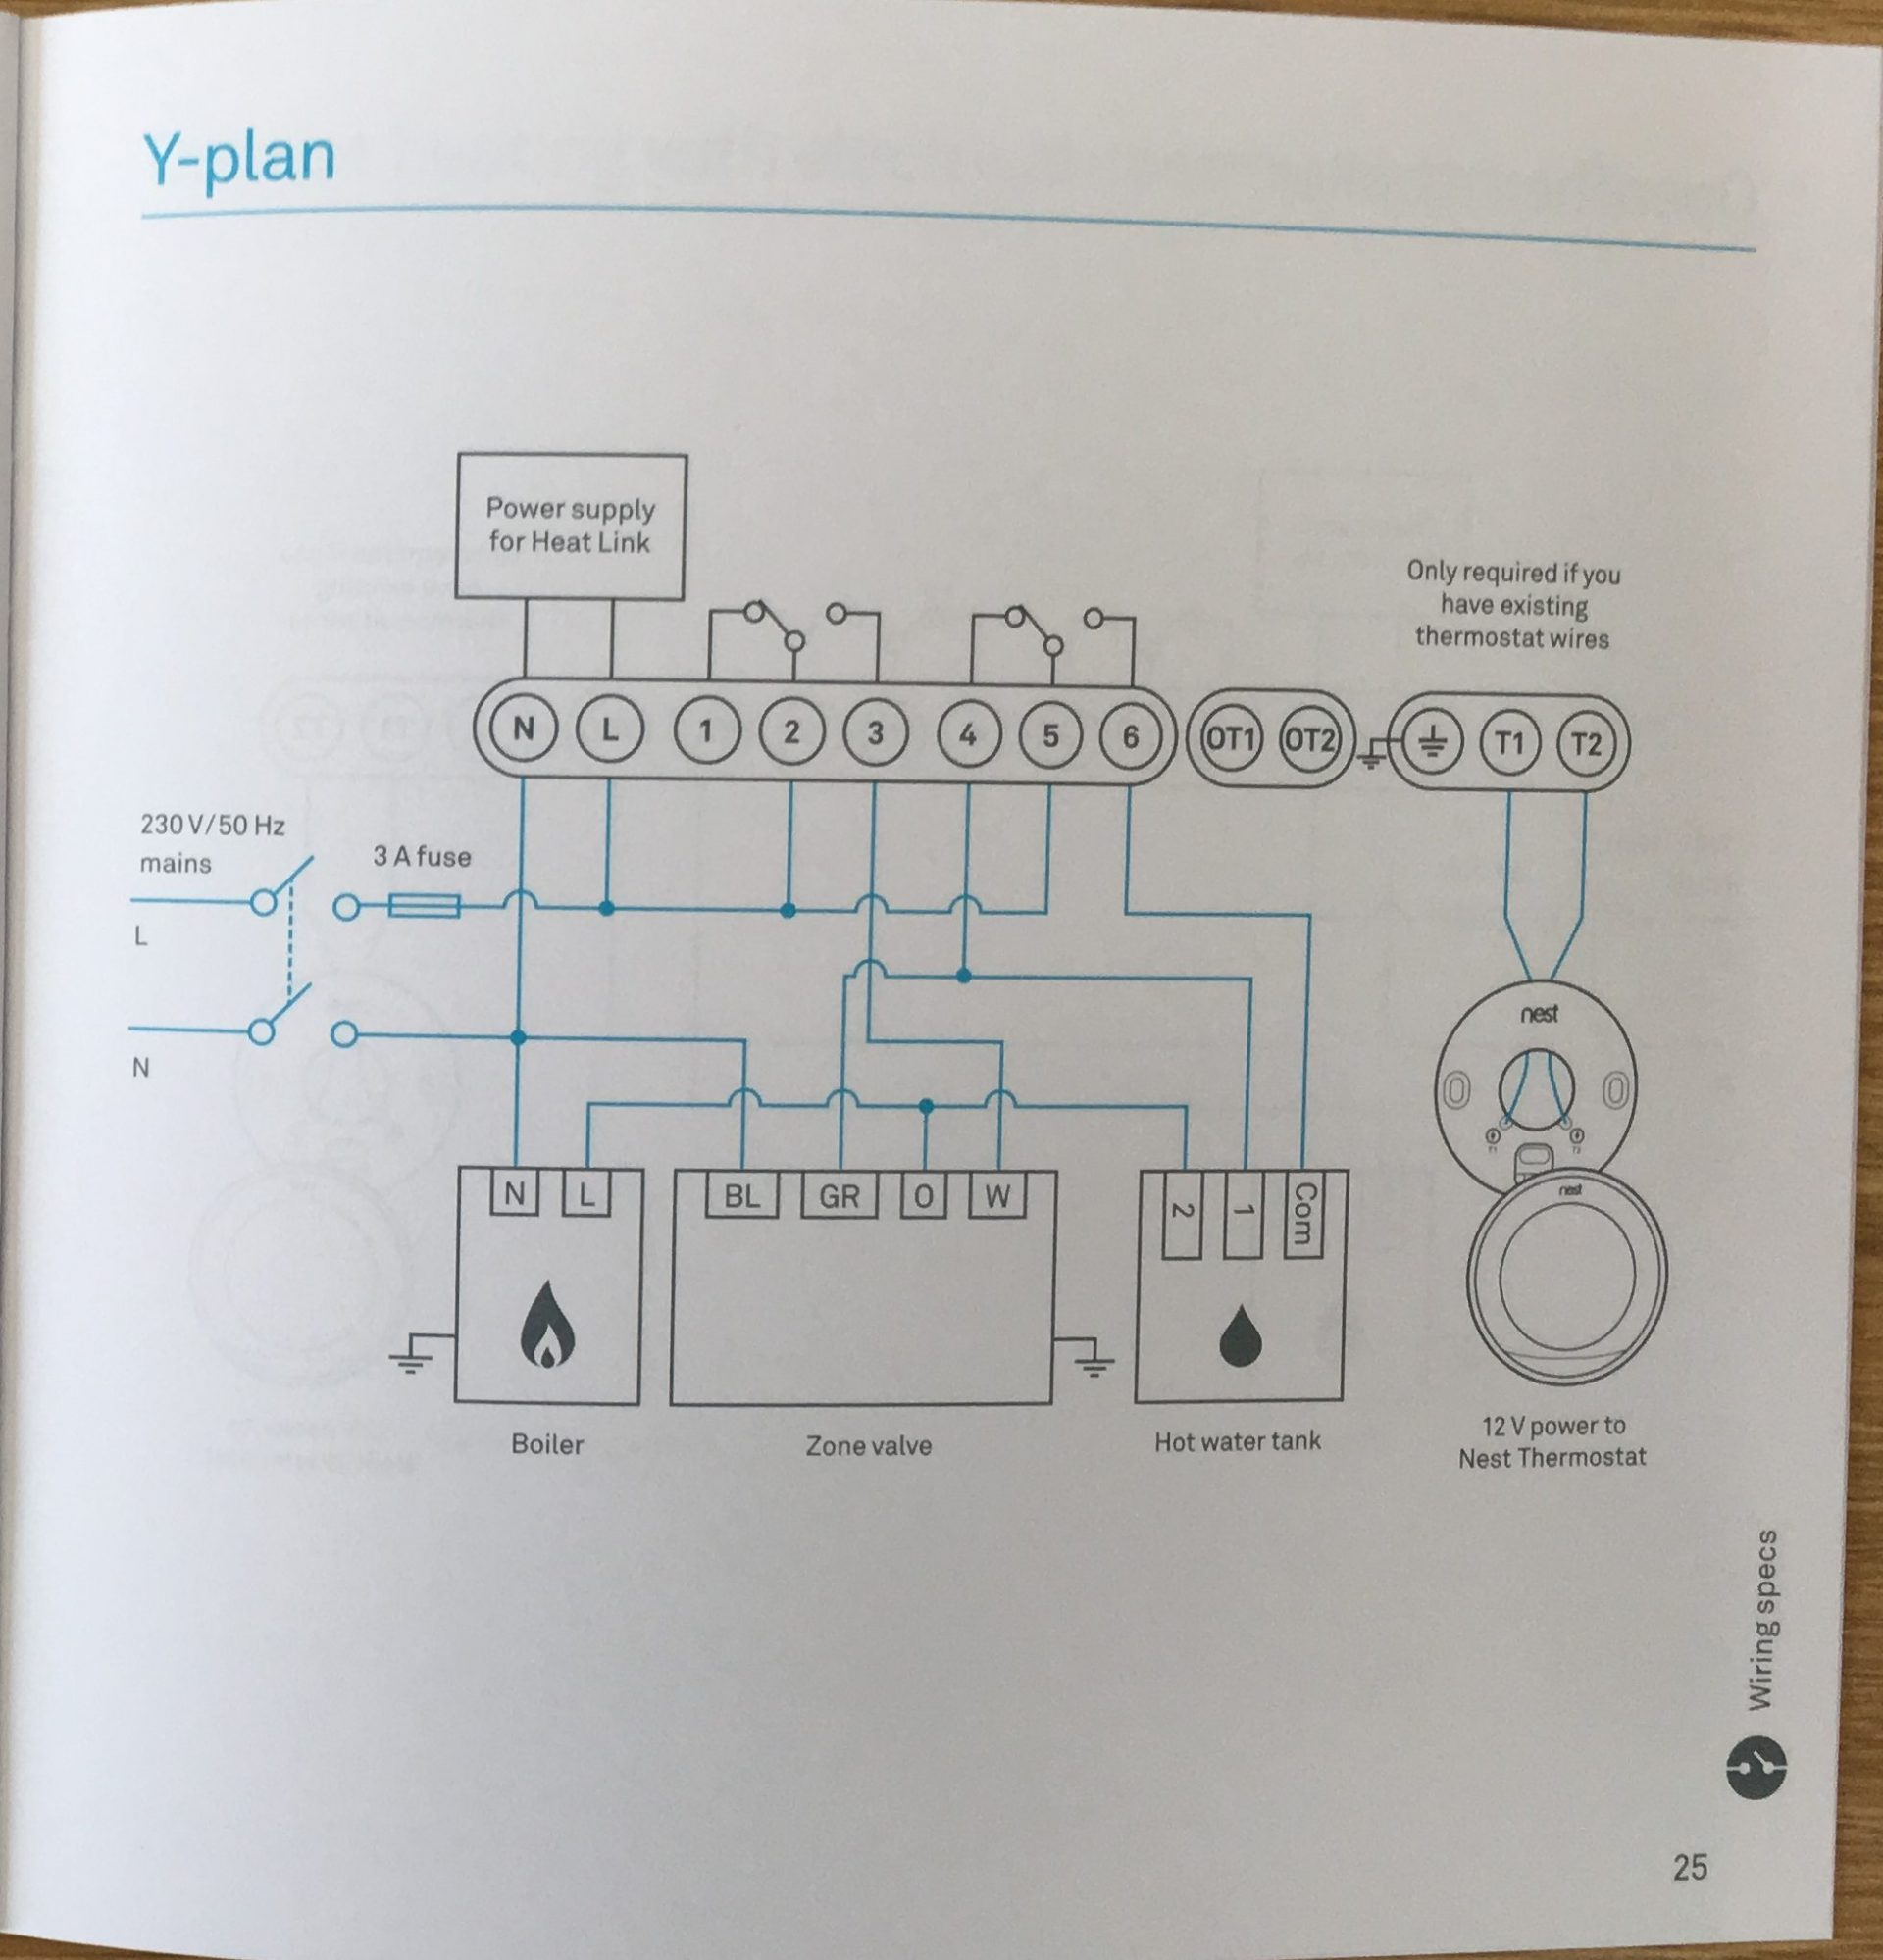 How To Install The Nest Learning Thermostat (3Rd Gen) In A Y-Plan - Nest Y Plan Wiring Diagram